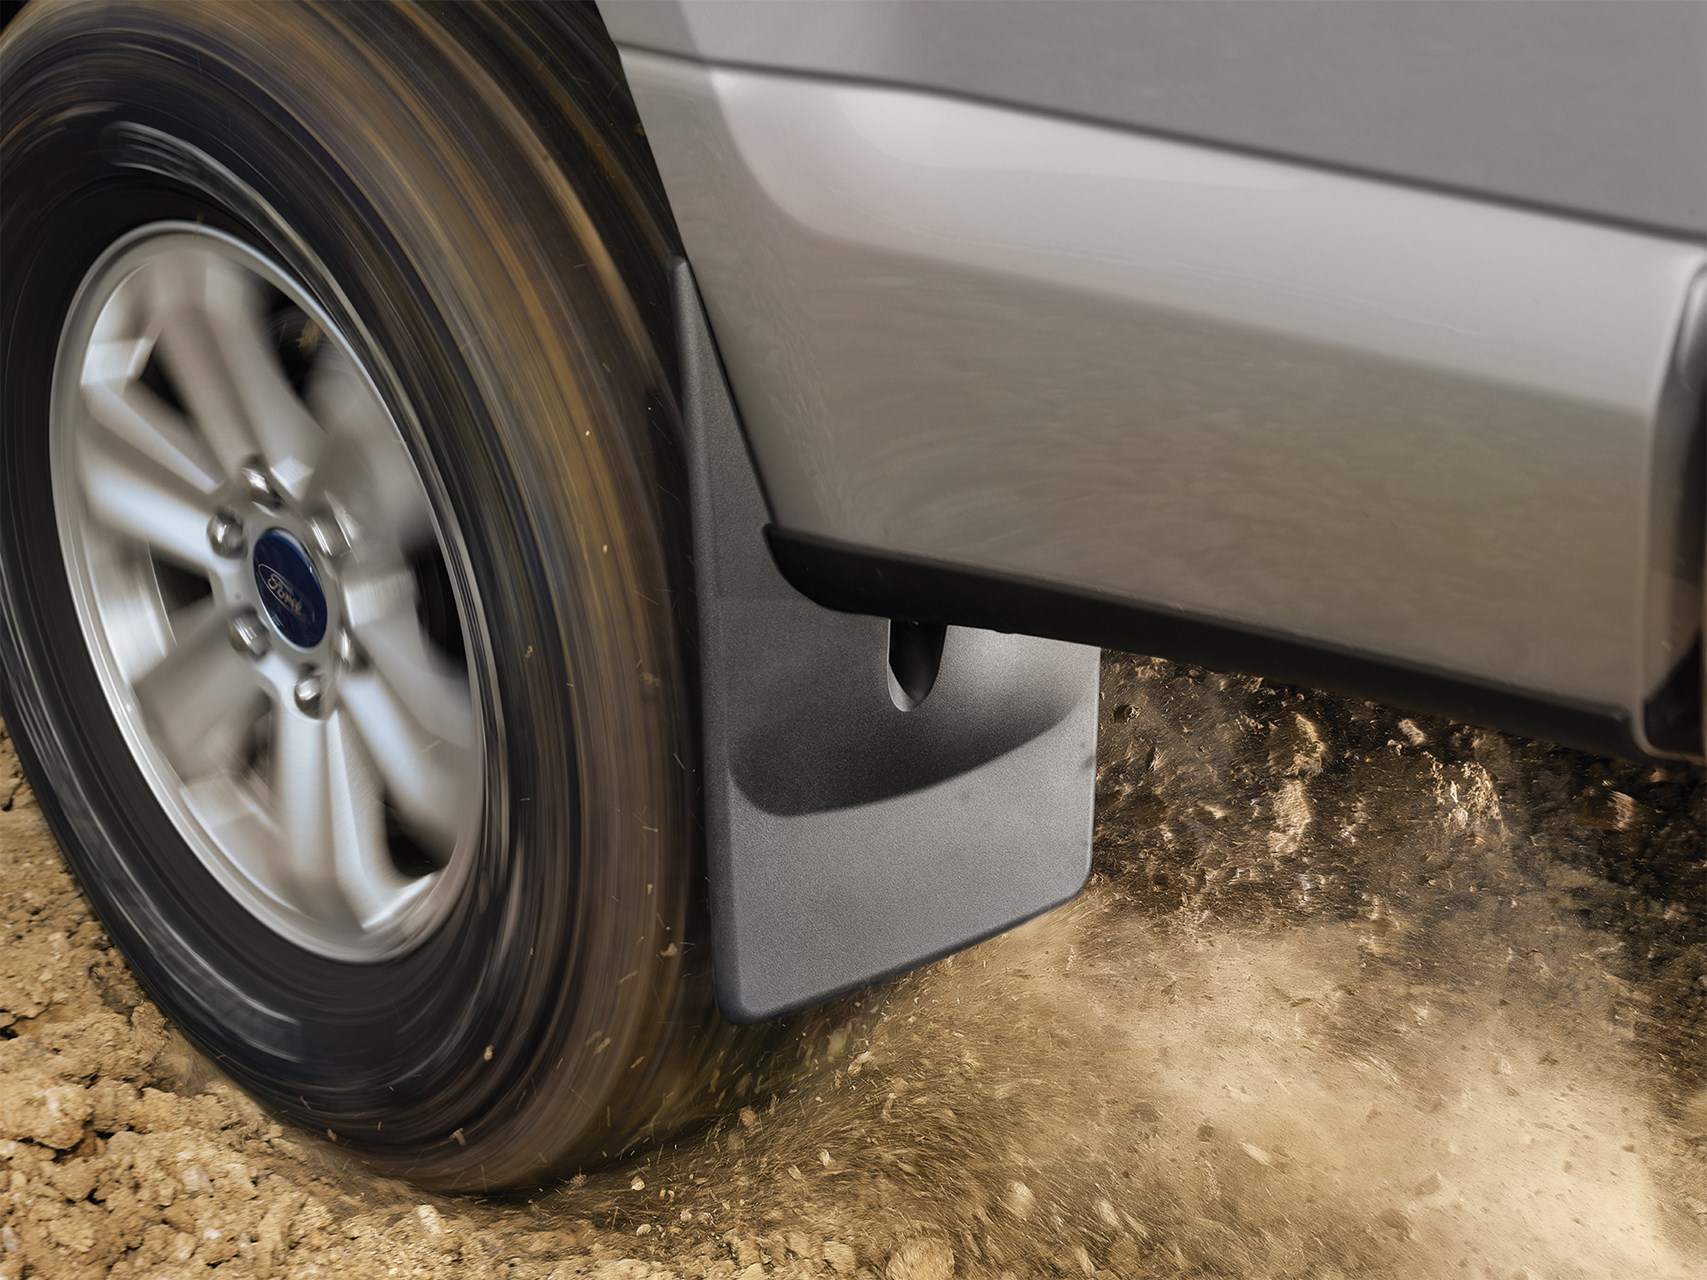 NO-DRILL MUD GUARDS - No drill application, uses existing holes in your fender wells. Custom fit for a nice finish.